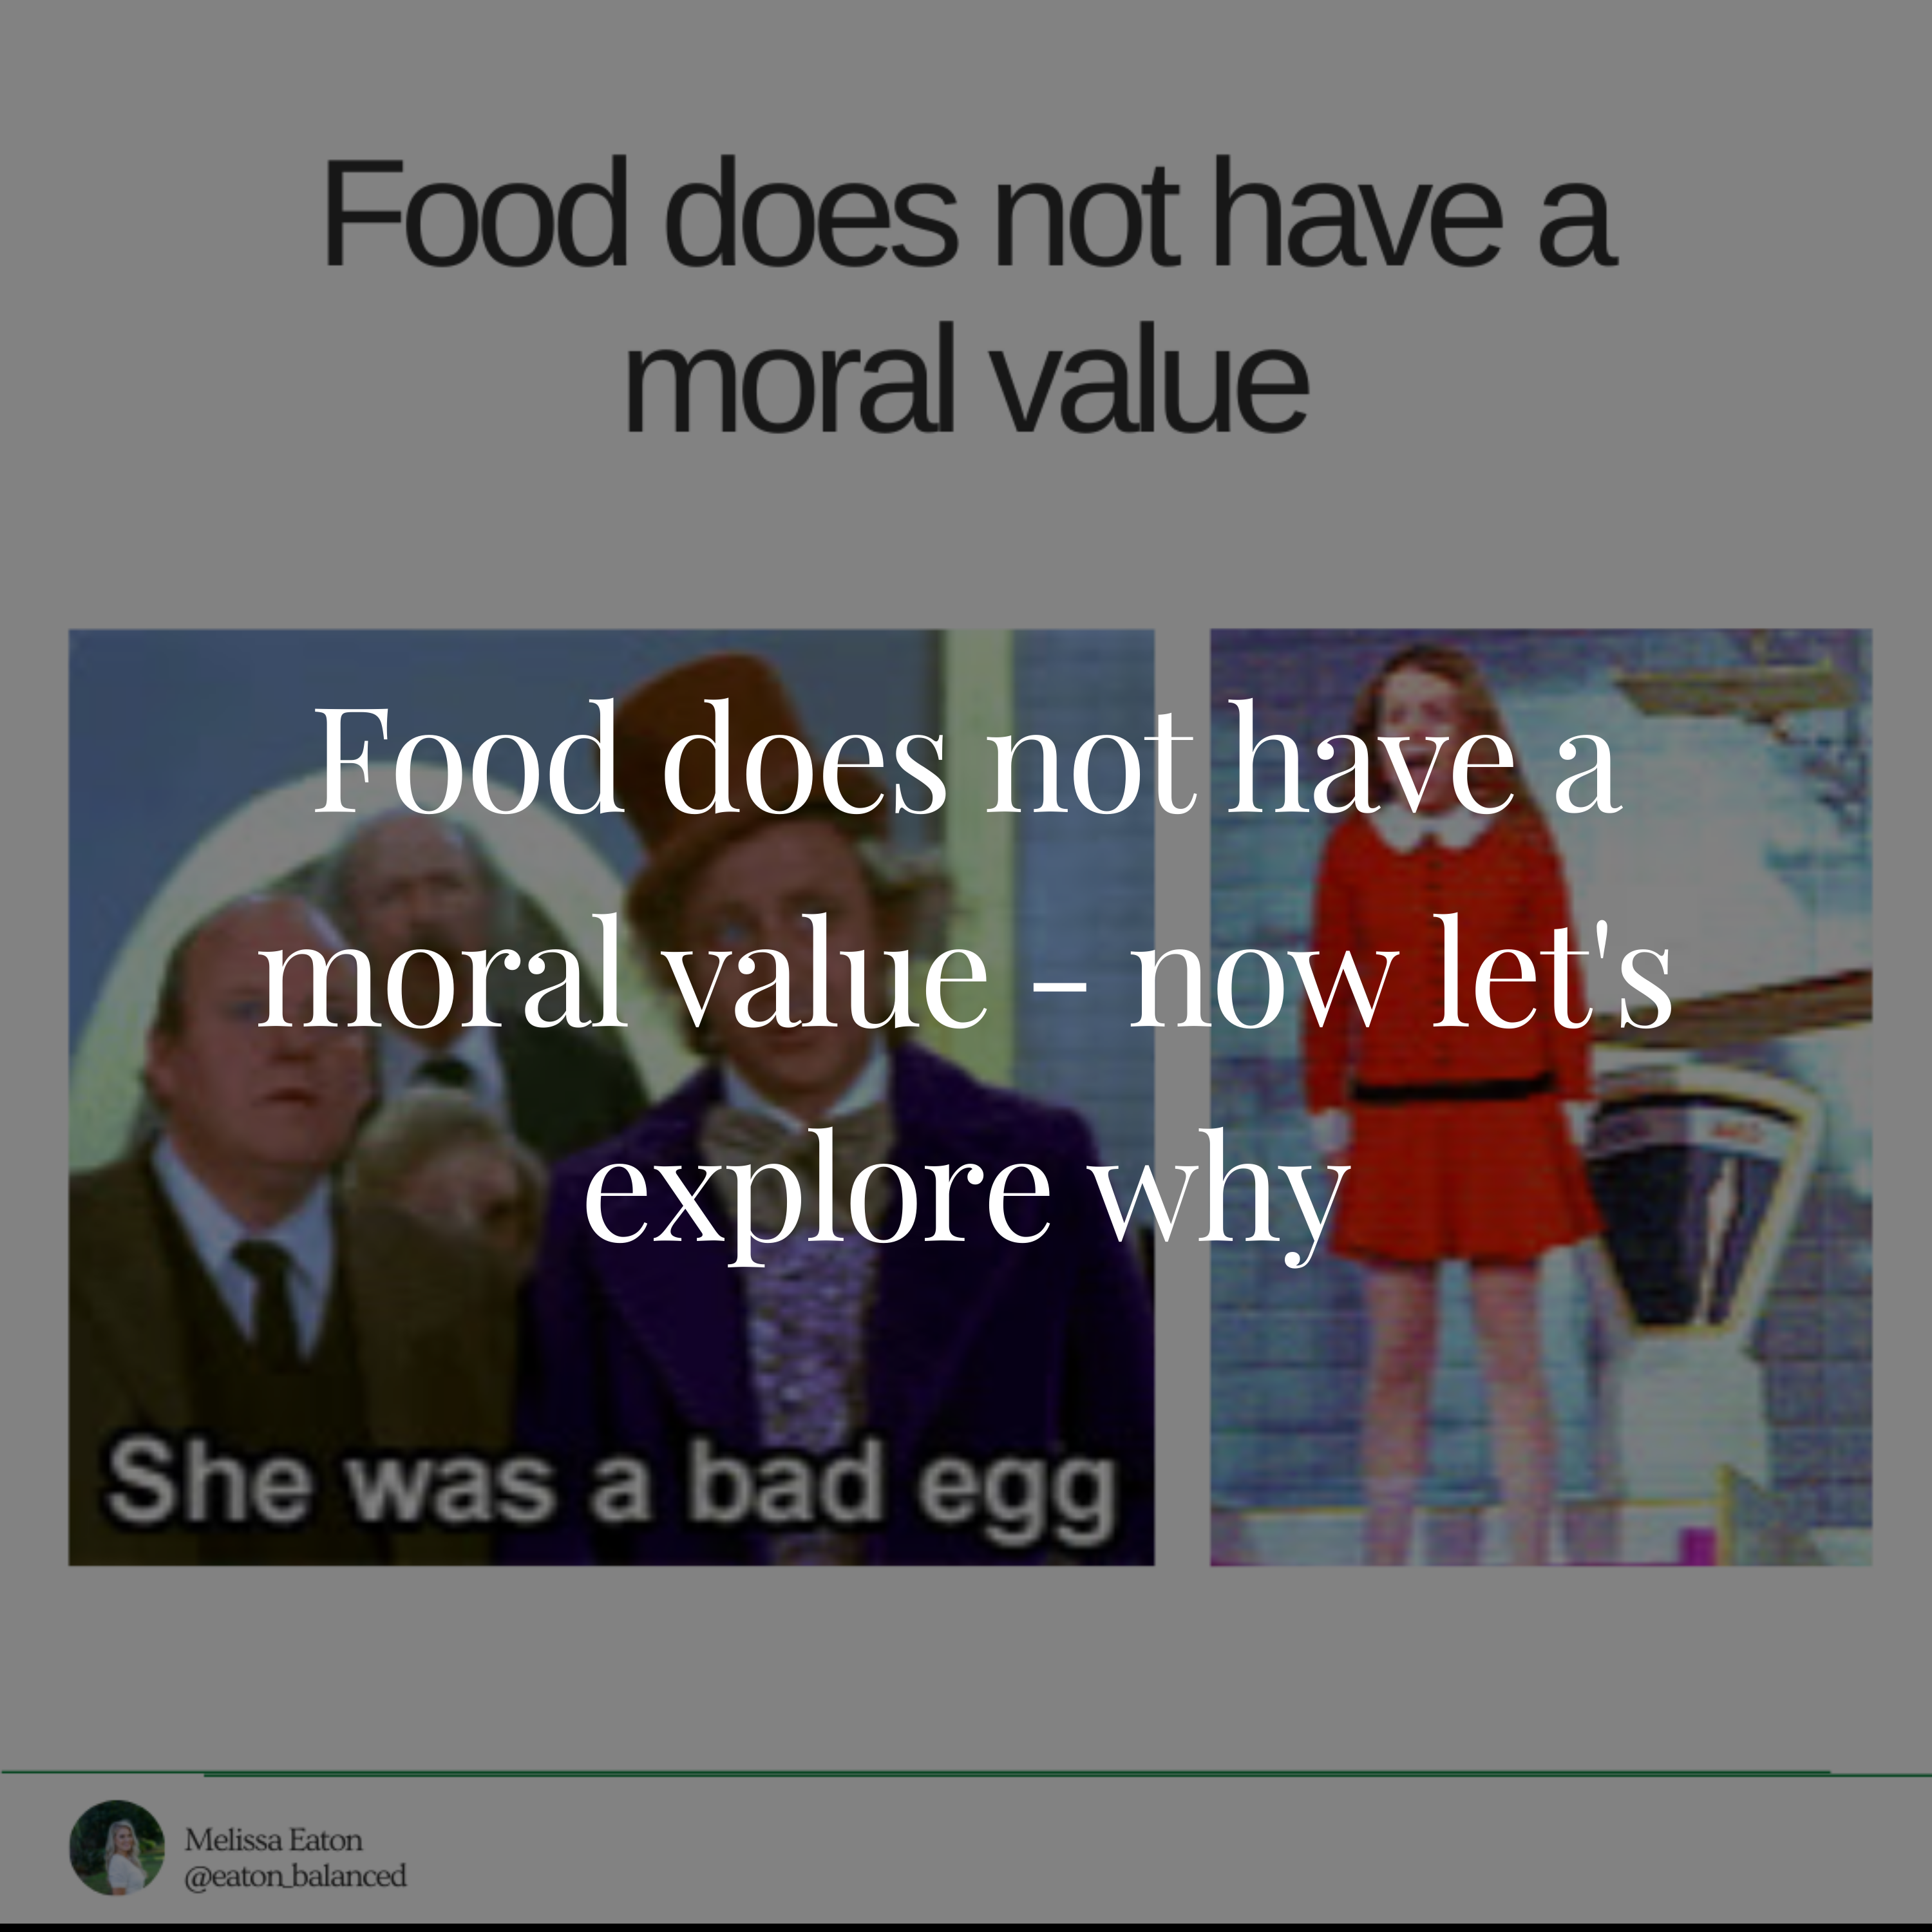 Food does not have a moral value - now let's explore why